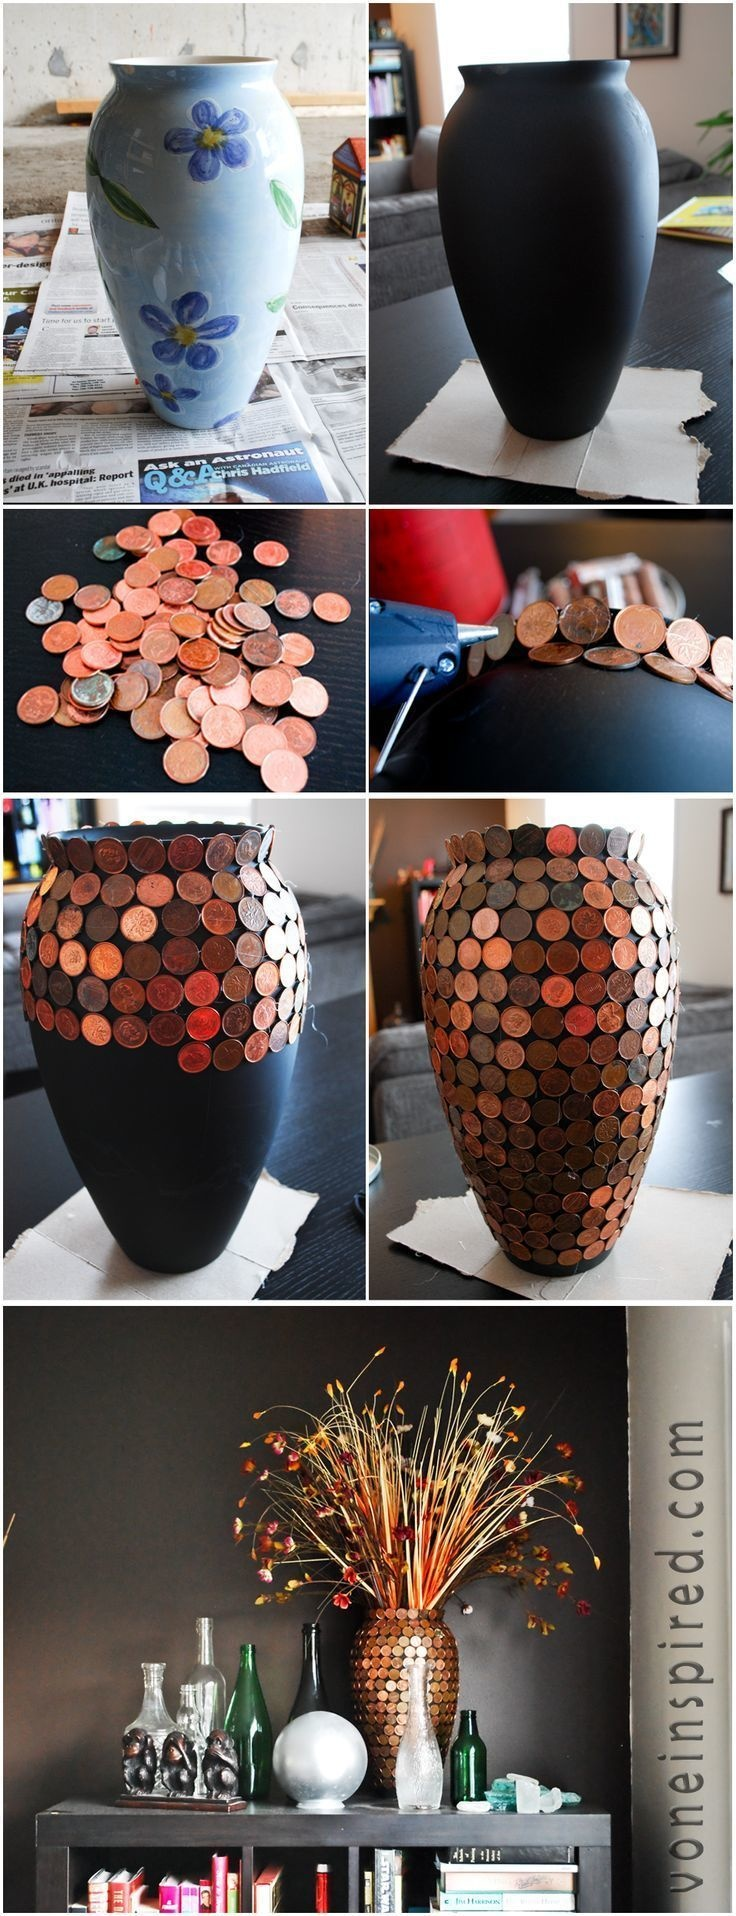 AD-Amazing-DIY-Projects-You-Can-Do-With-Old-Pennies-8